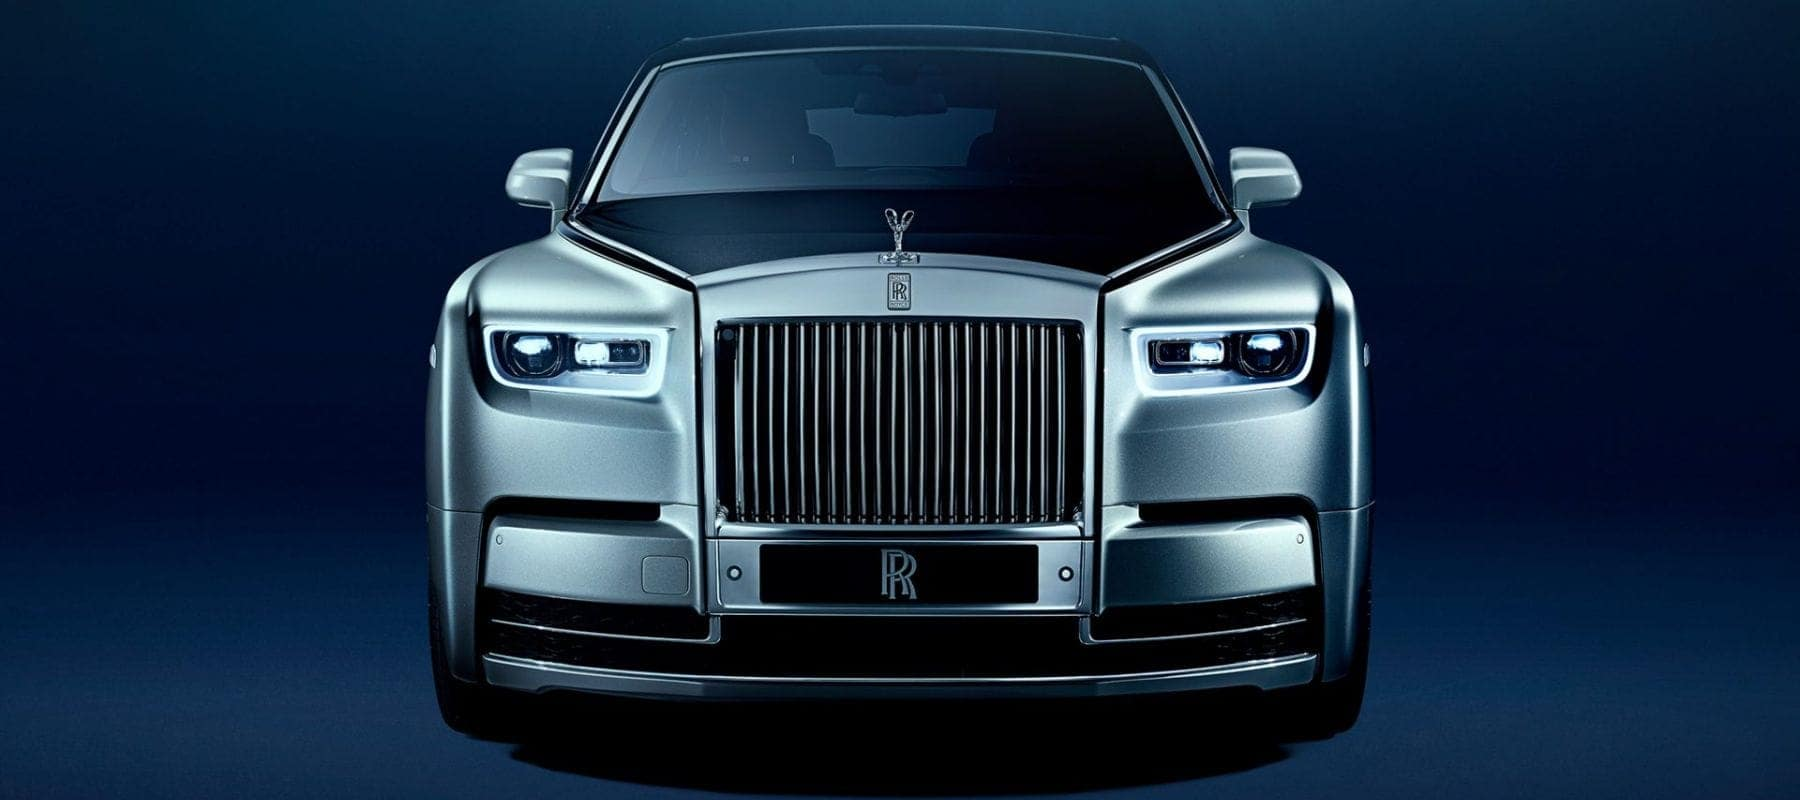 Front view of the Rolls-Royce Phantom